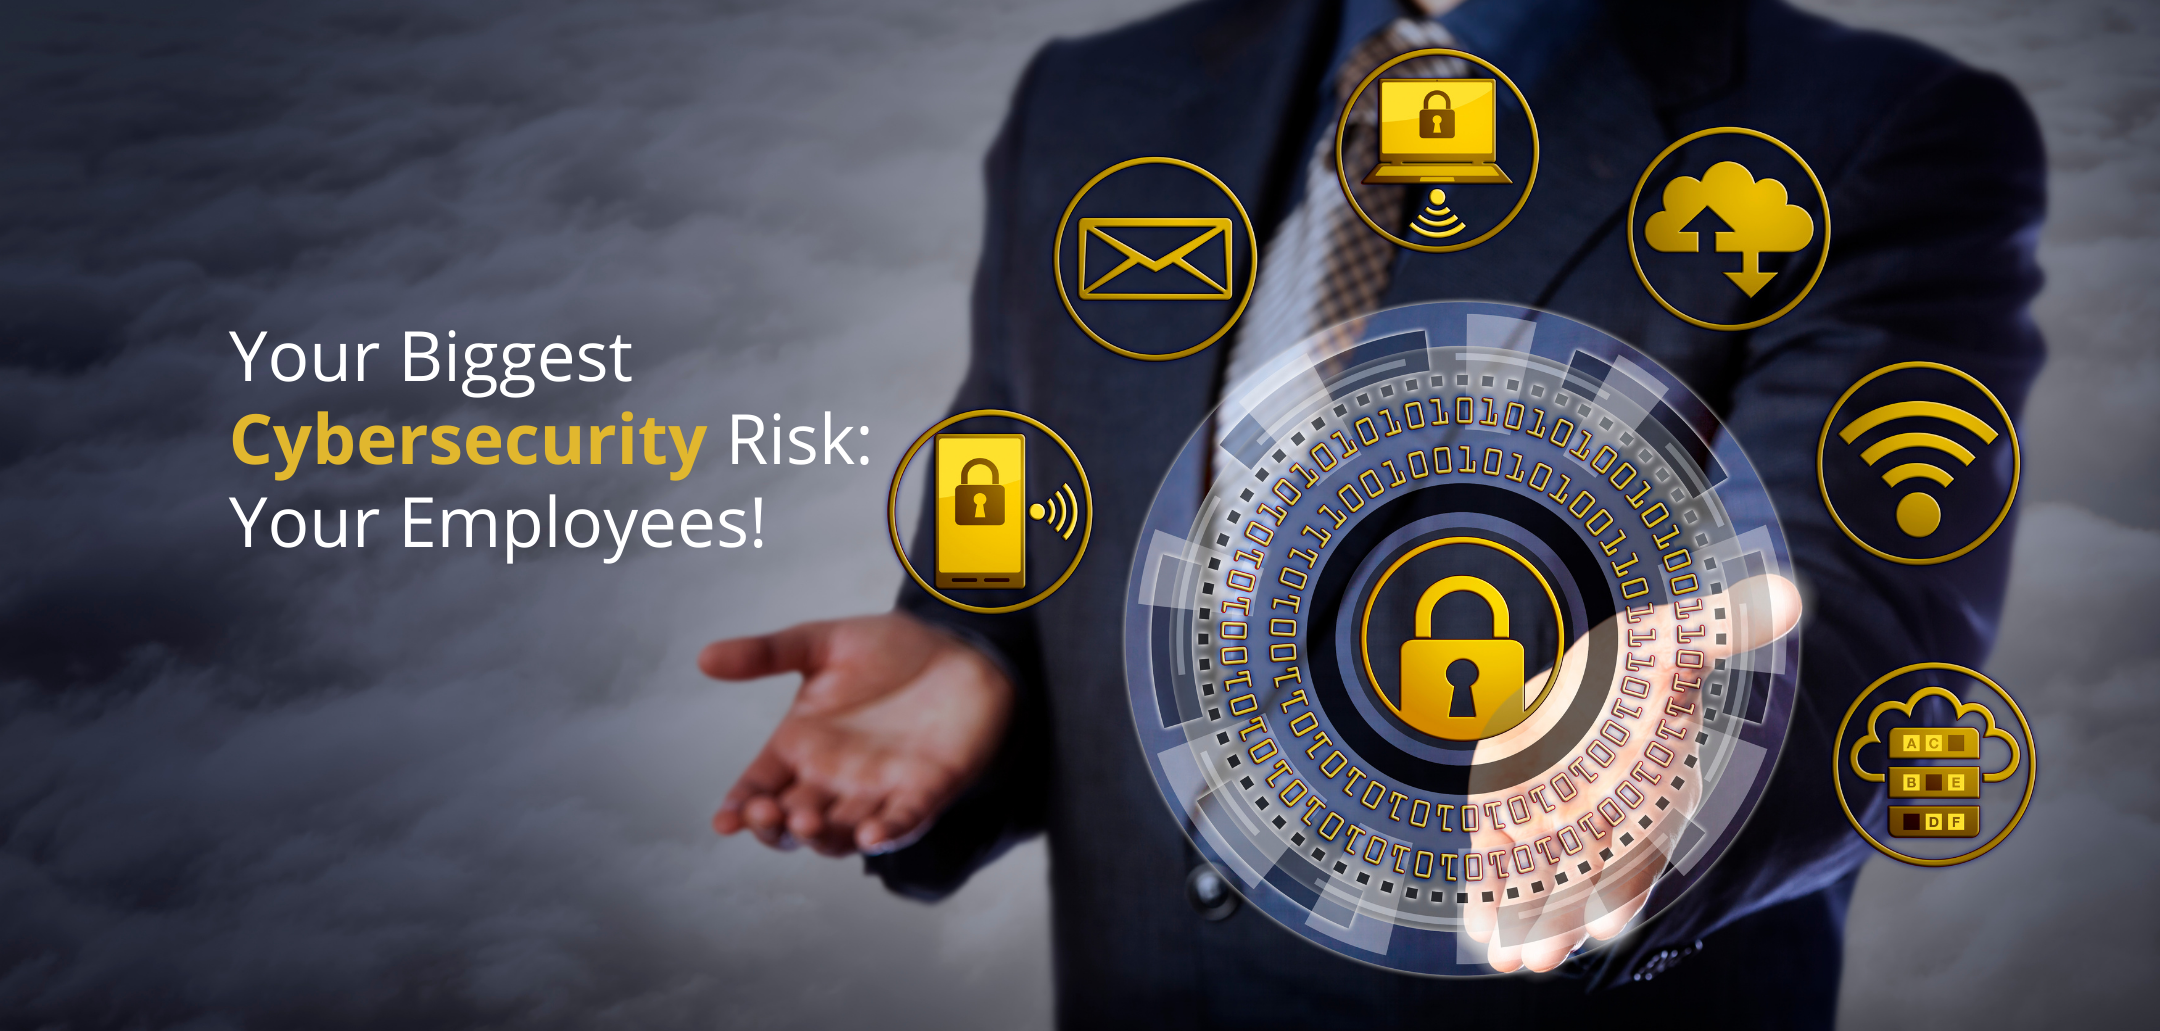 Your Biggest Cybersecurity Risk: Your Employees